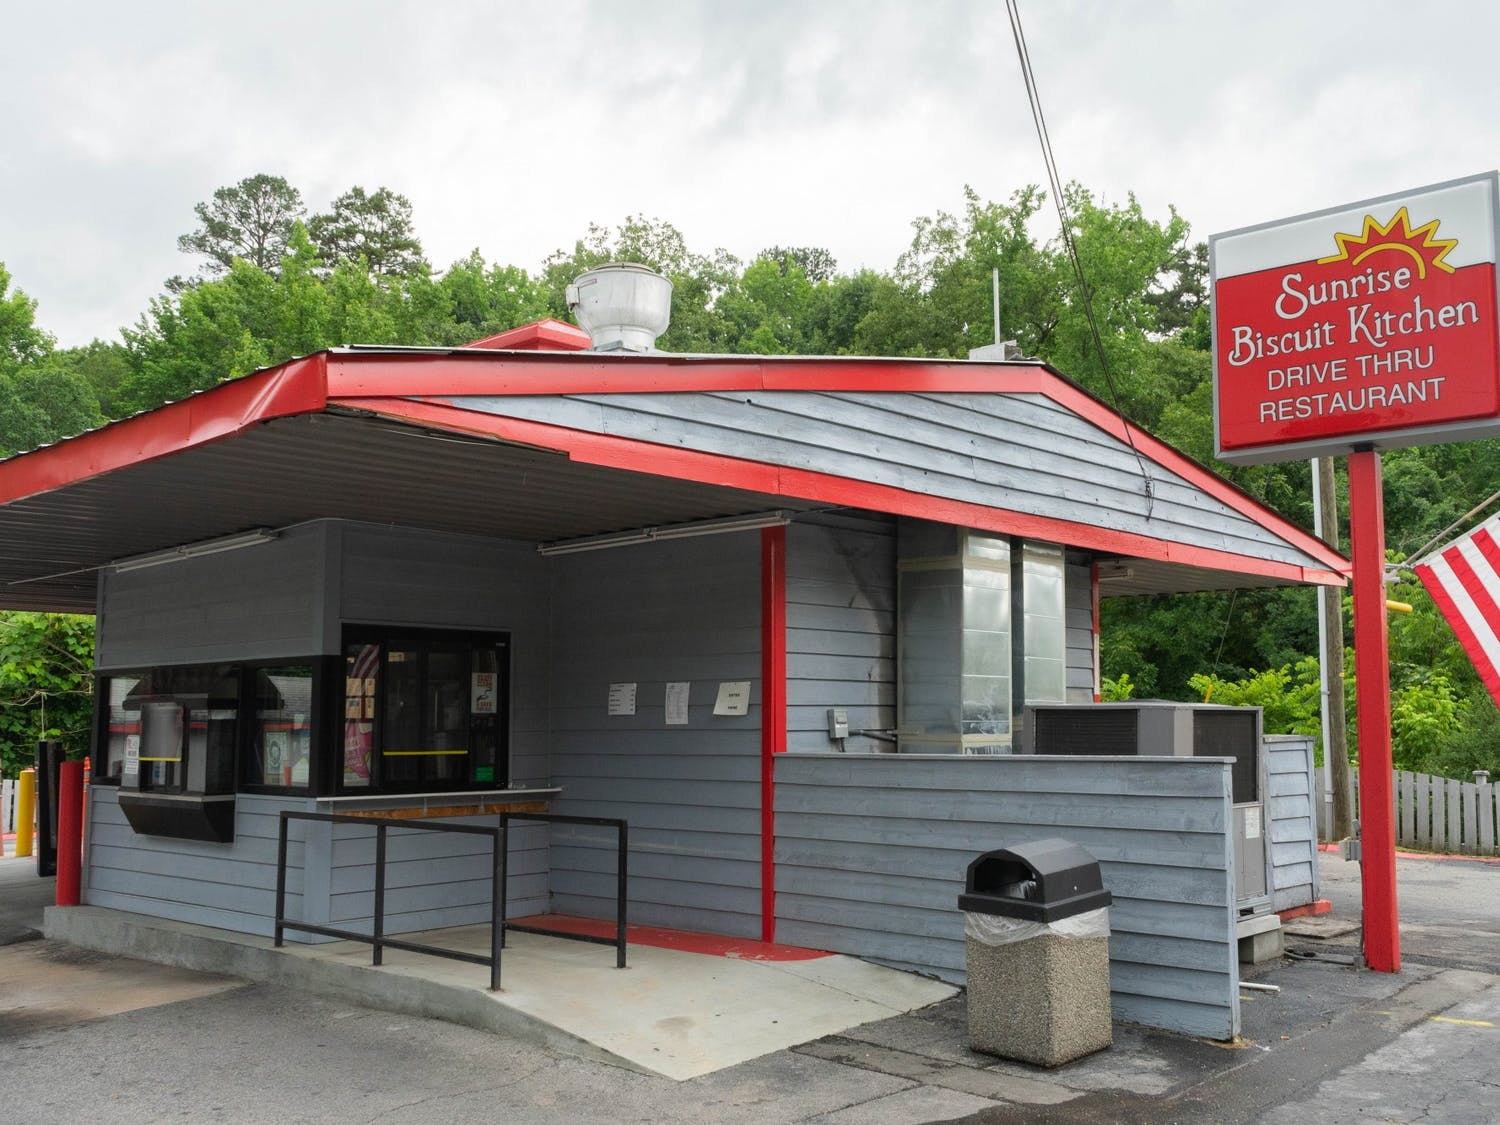 Sunrise Biscuit Kitchen sits on East Franklin Street in Chapel Hill on Thursday, June 10th, 2021.